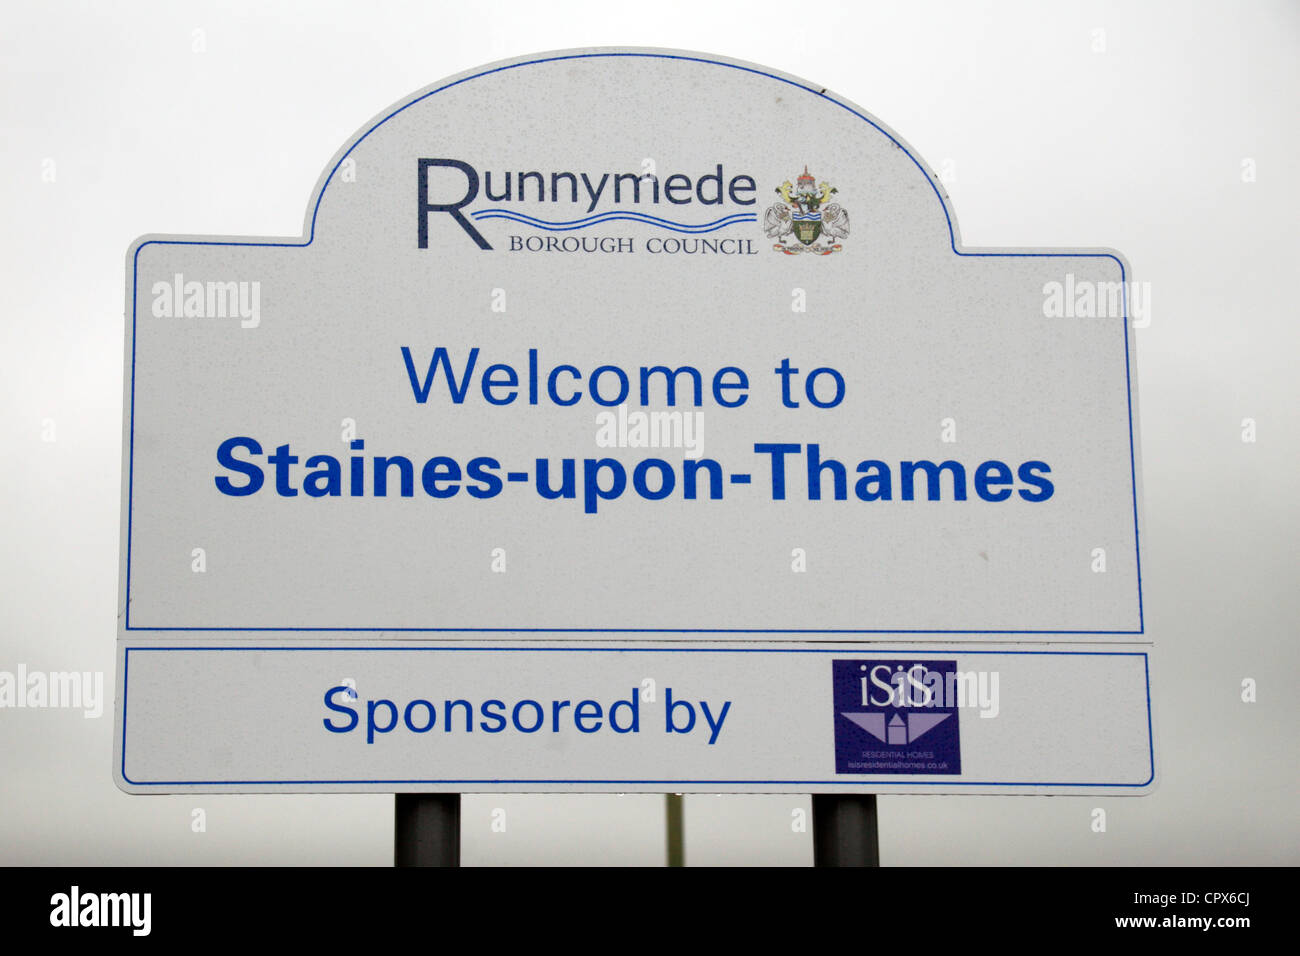 Swingers in staines upon thames